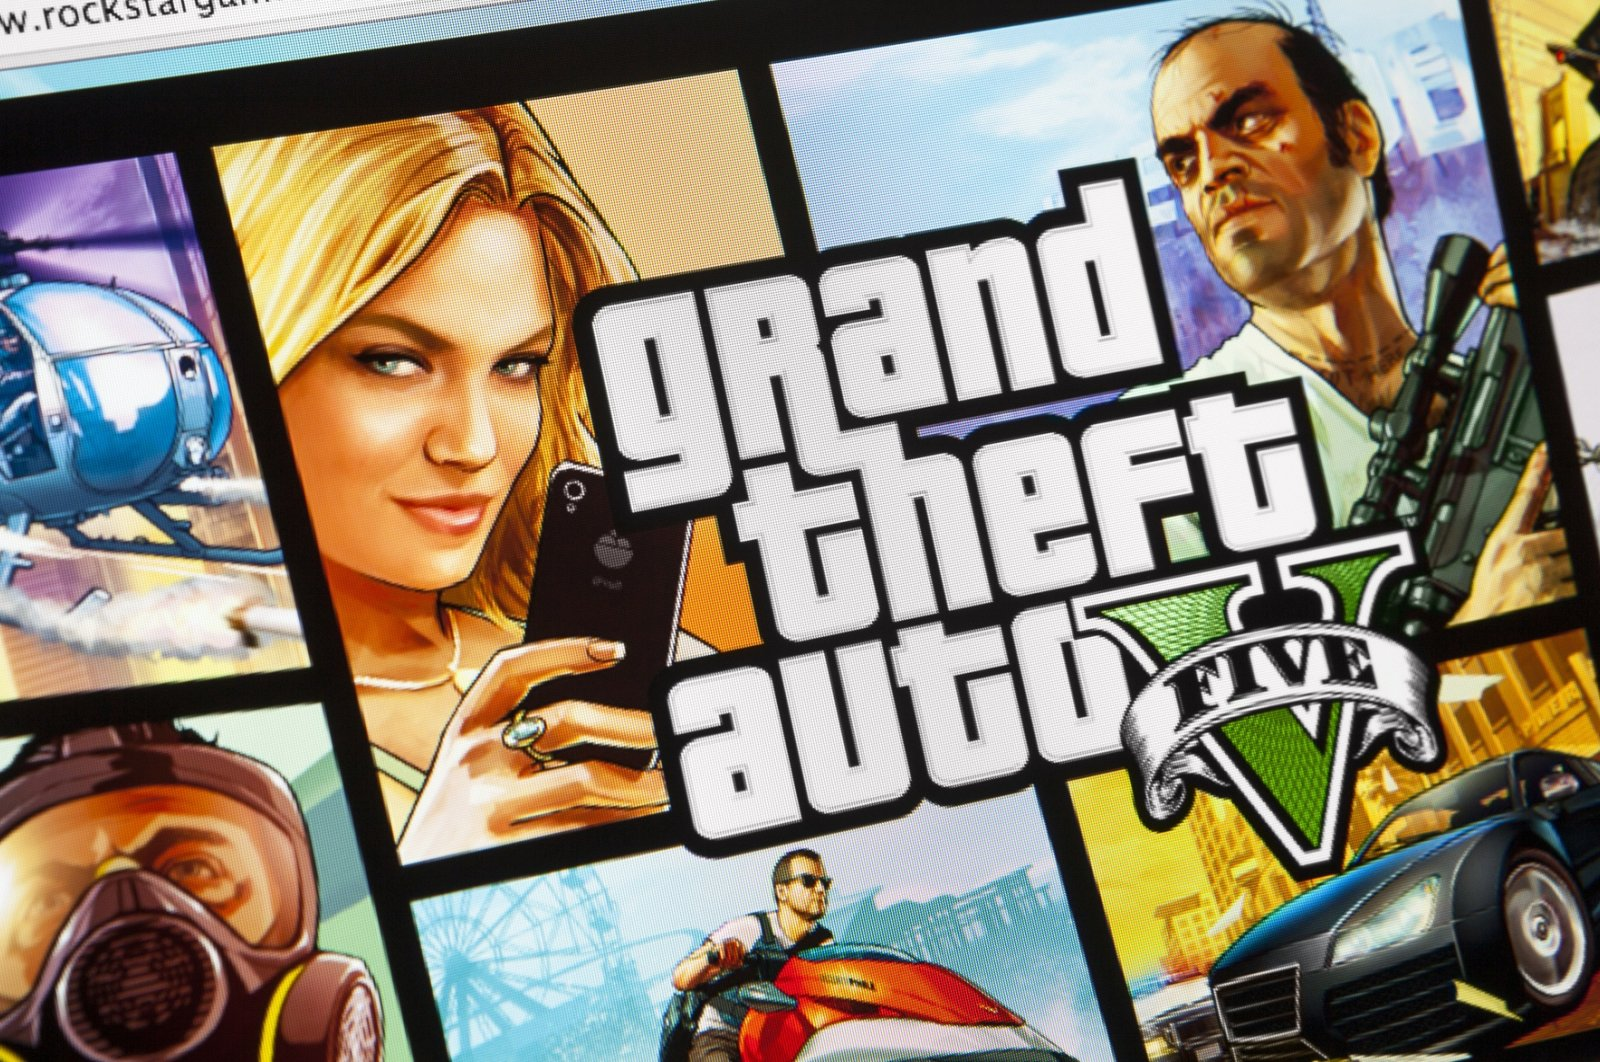 """A close-up on an iMac screen shows the launch announcement of """"Grand Theft Auto V"""" in Moscow, Russia, Sept. 23, 2013. (iStock Photo)"""